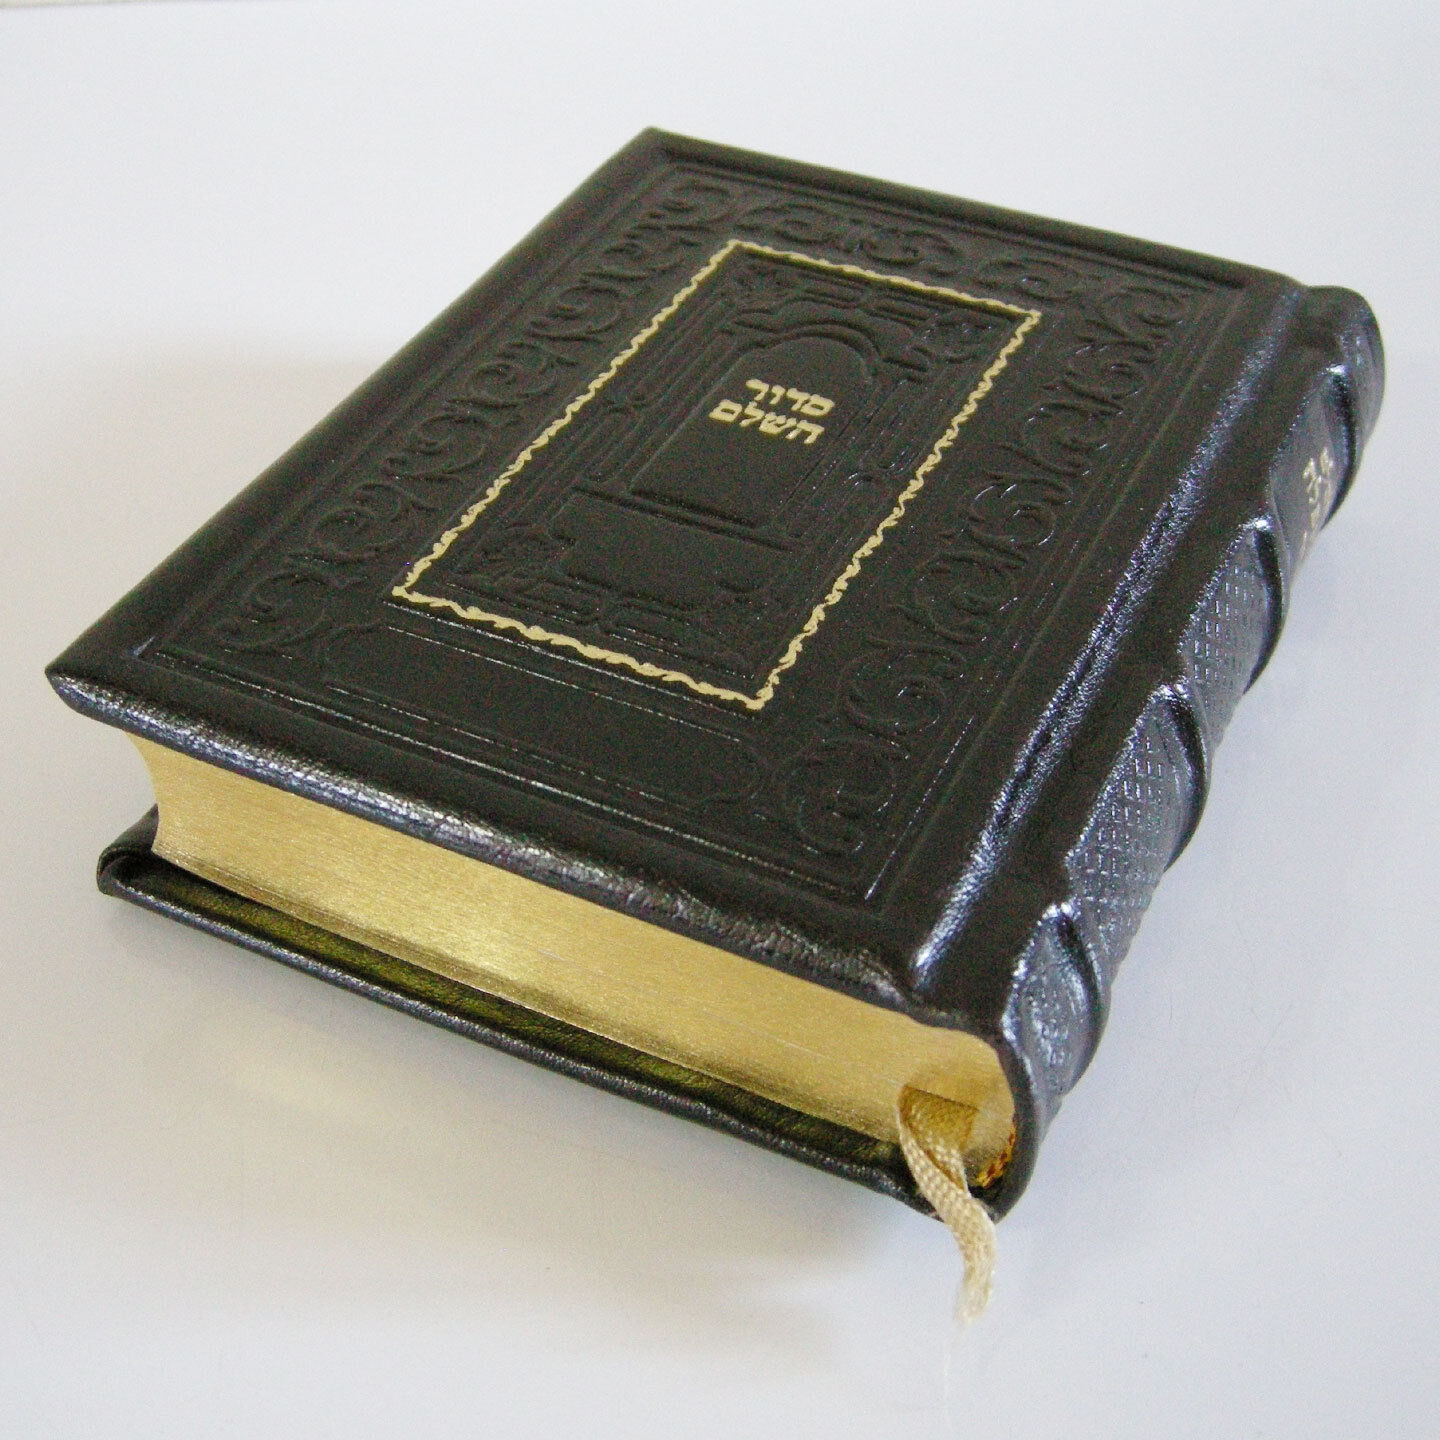 Genuine Leather-Bound Pocket Siddur Gilded Pages Hebrew Handmade Miller Israel (מוכר מישראל)